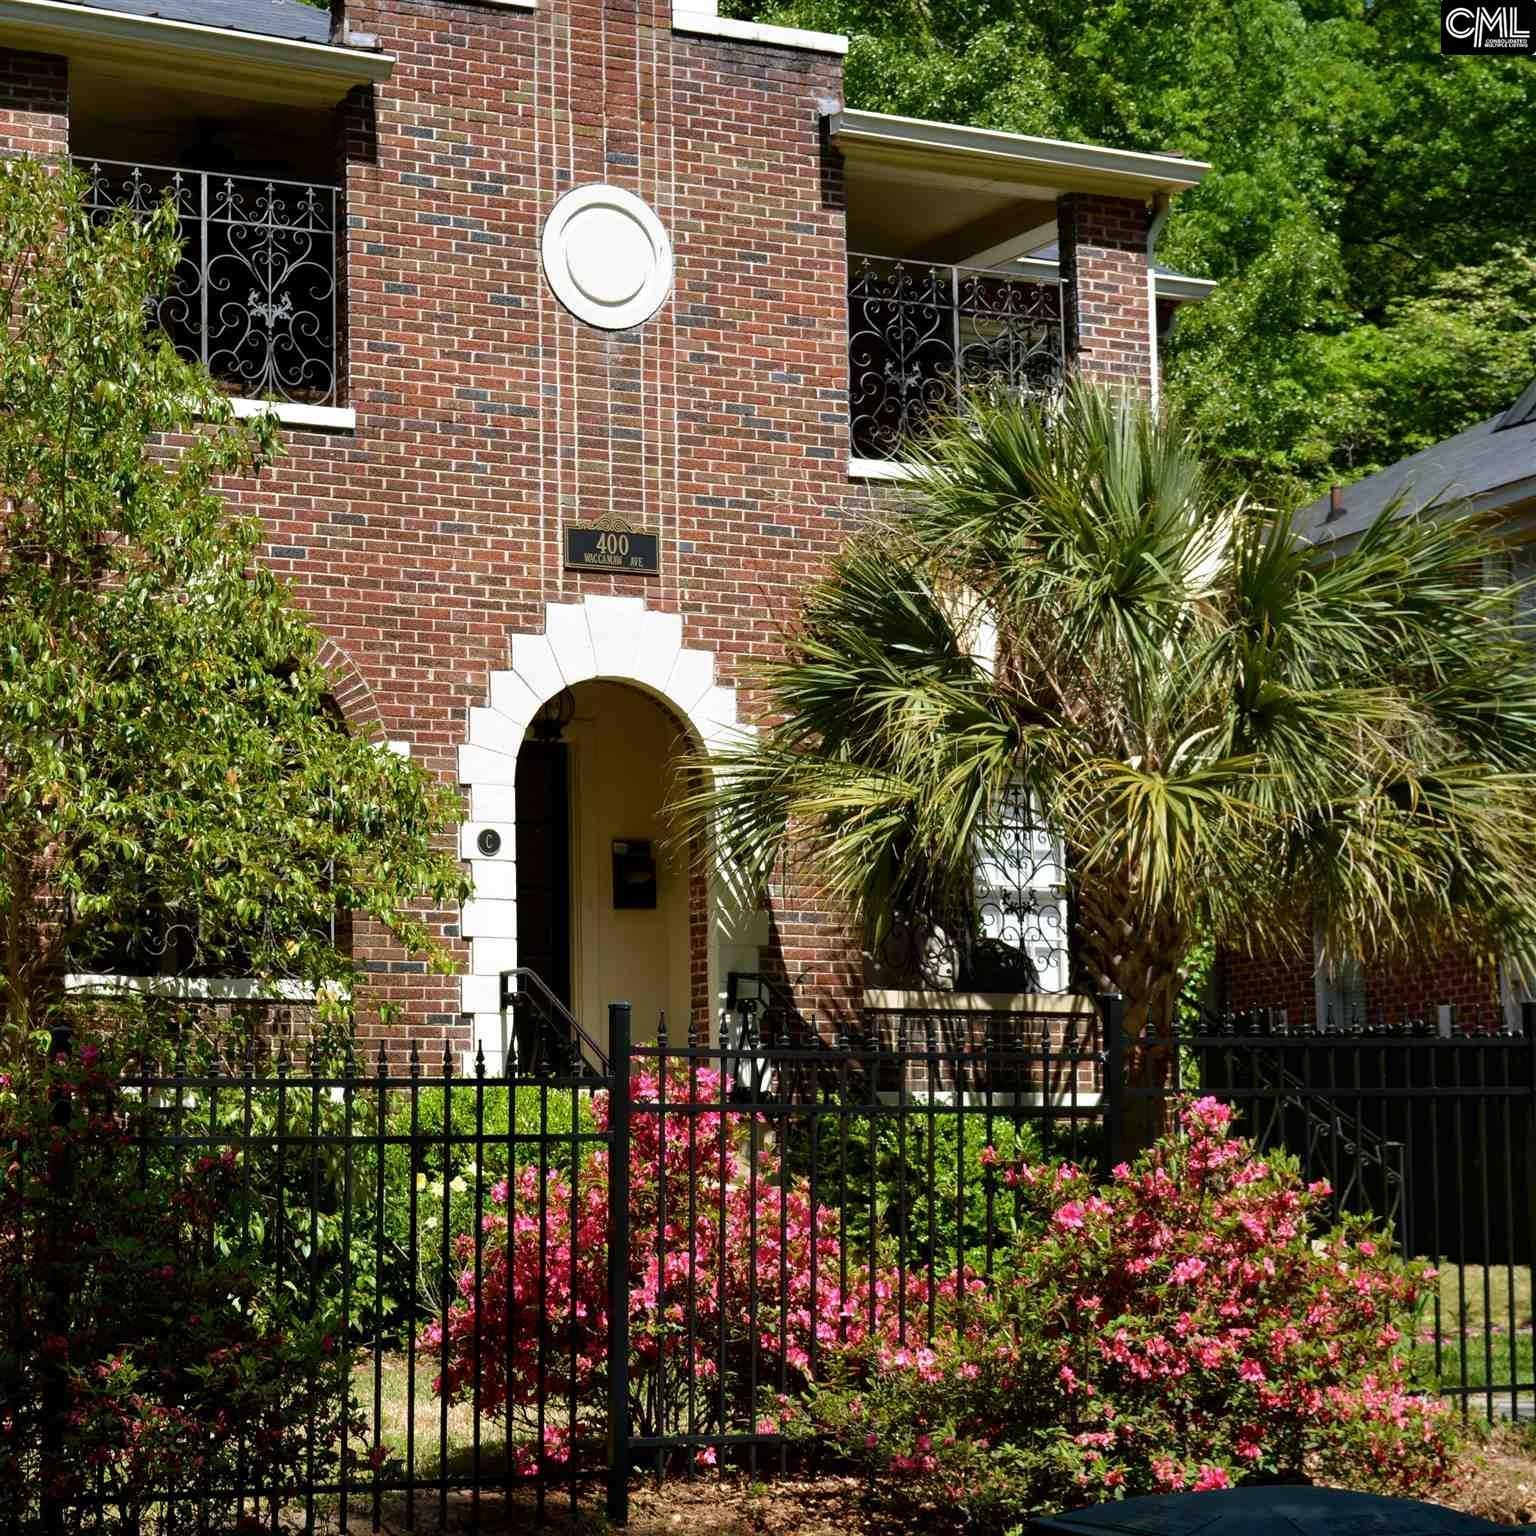 404 Waccamaw Ave, Columbia, SC 29205 - Estimate and Home Details ...